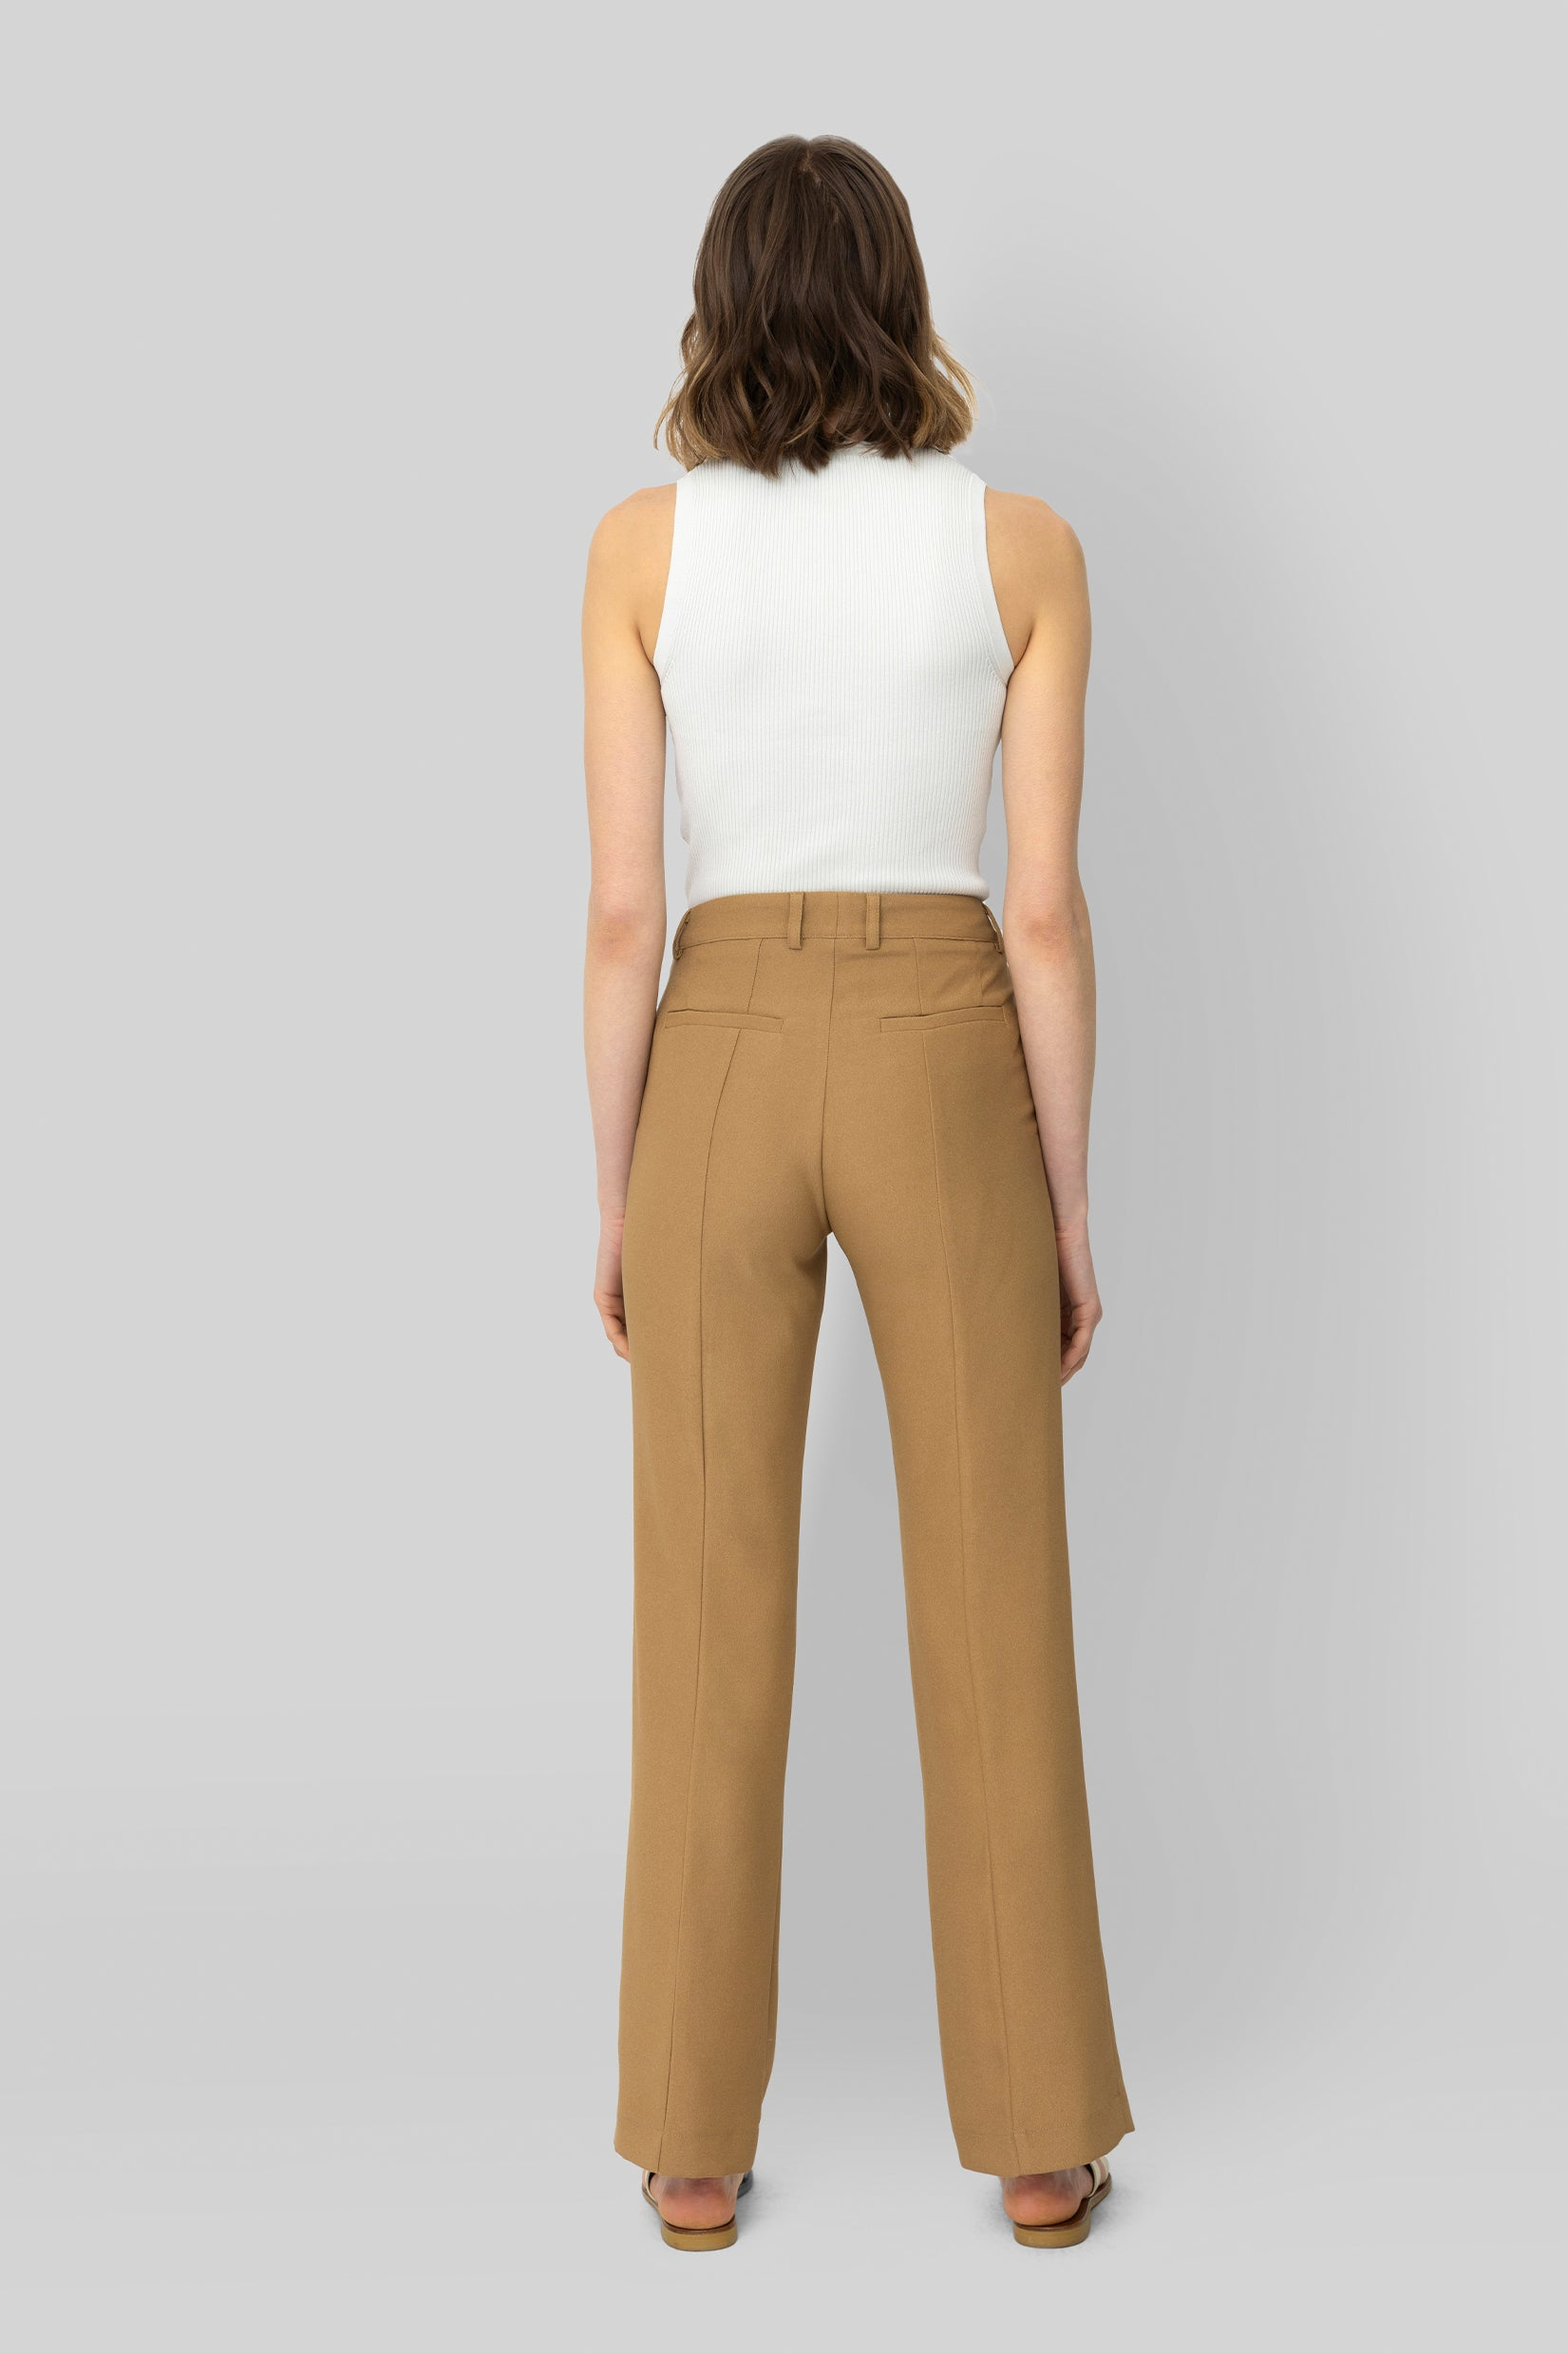 The Nude Lover Pants